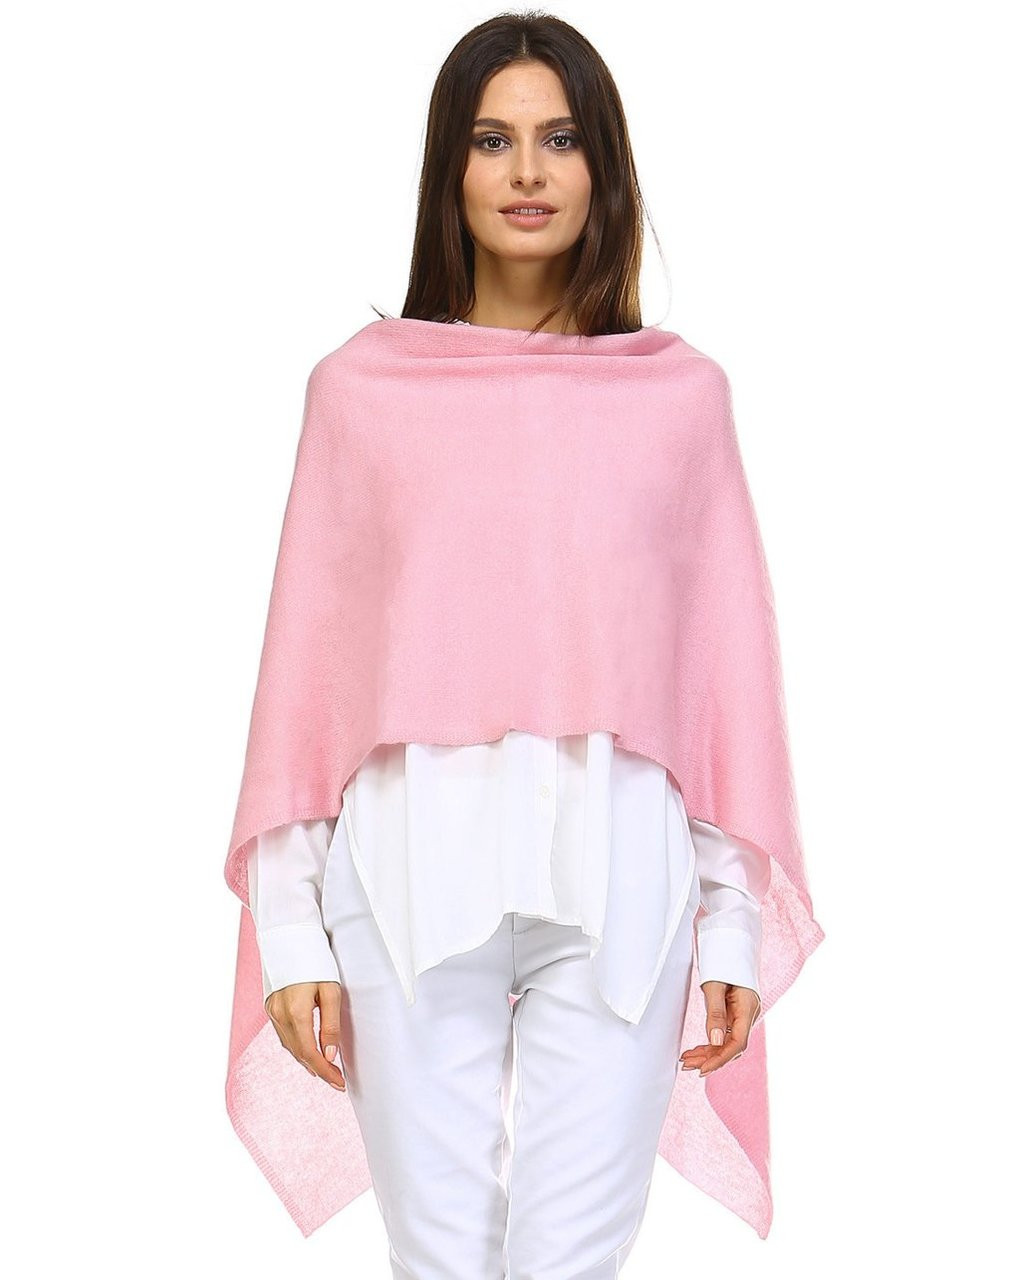 Cashmere Wrap  - Cotton Candy